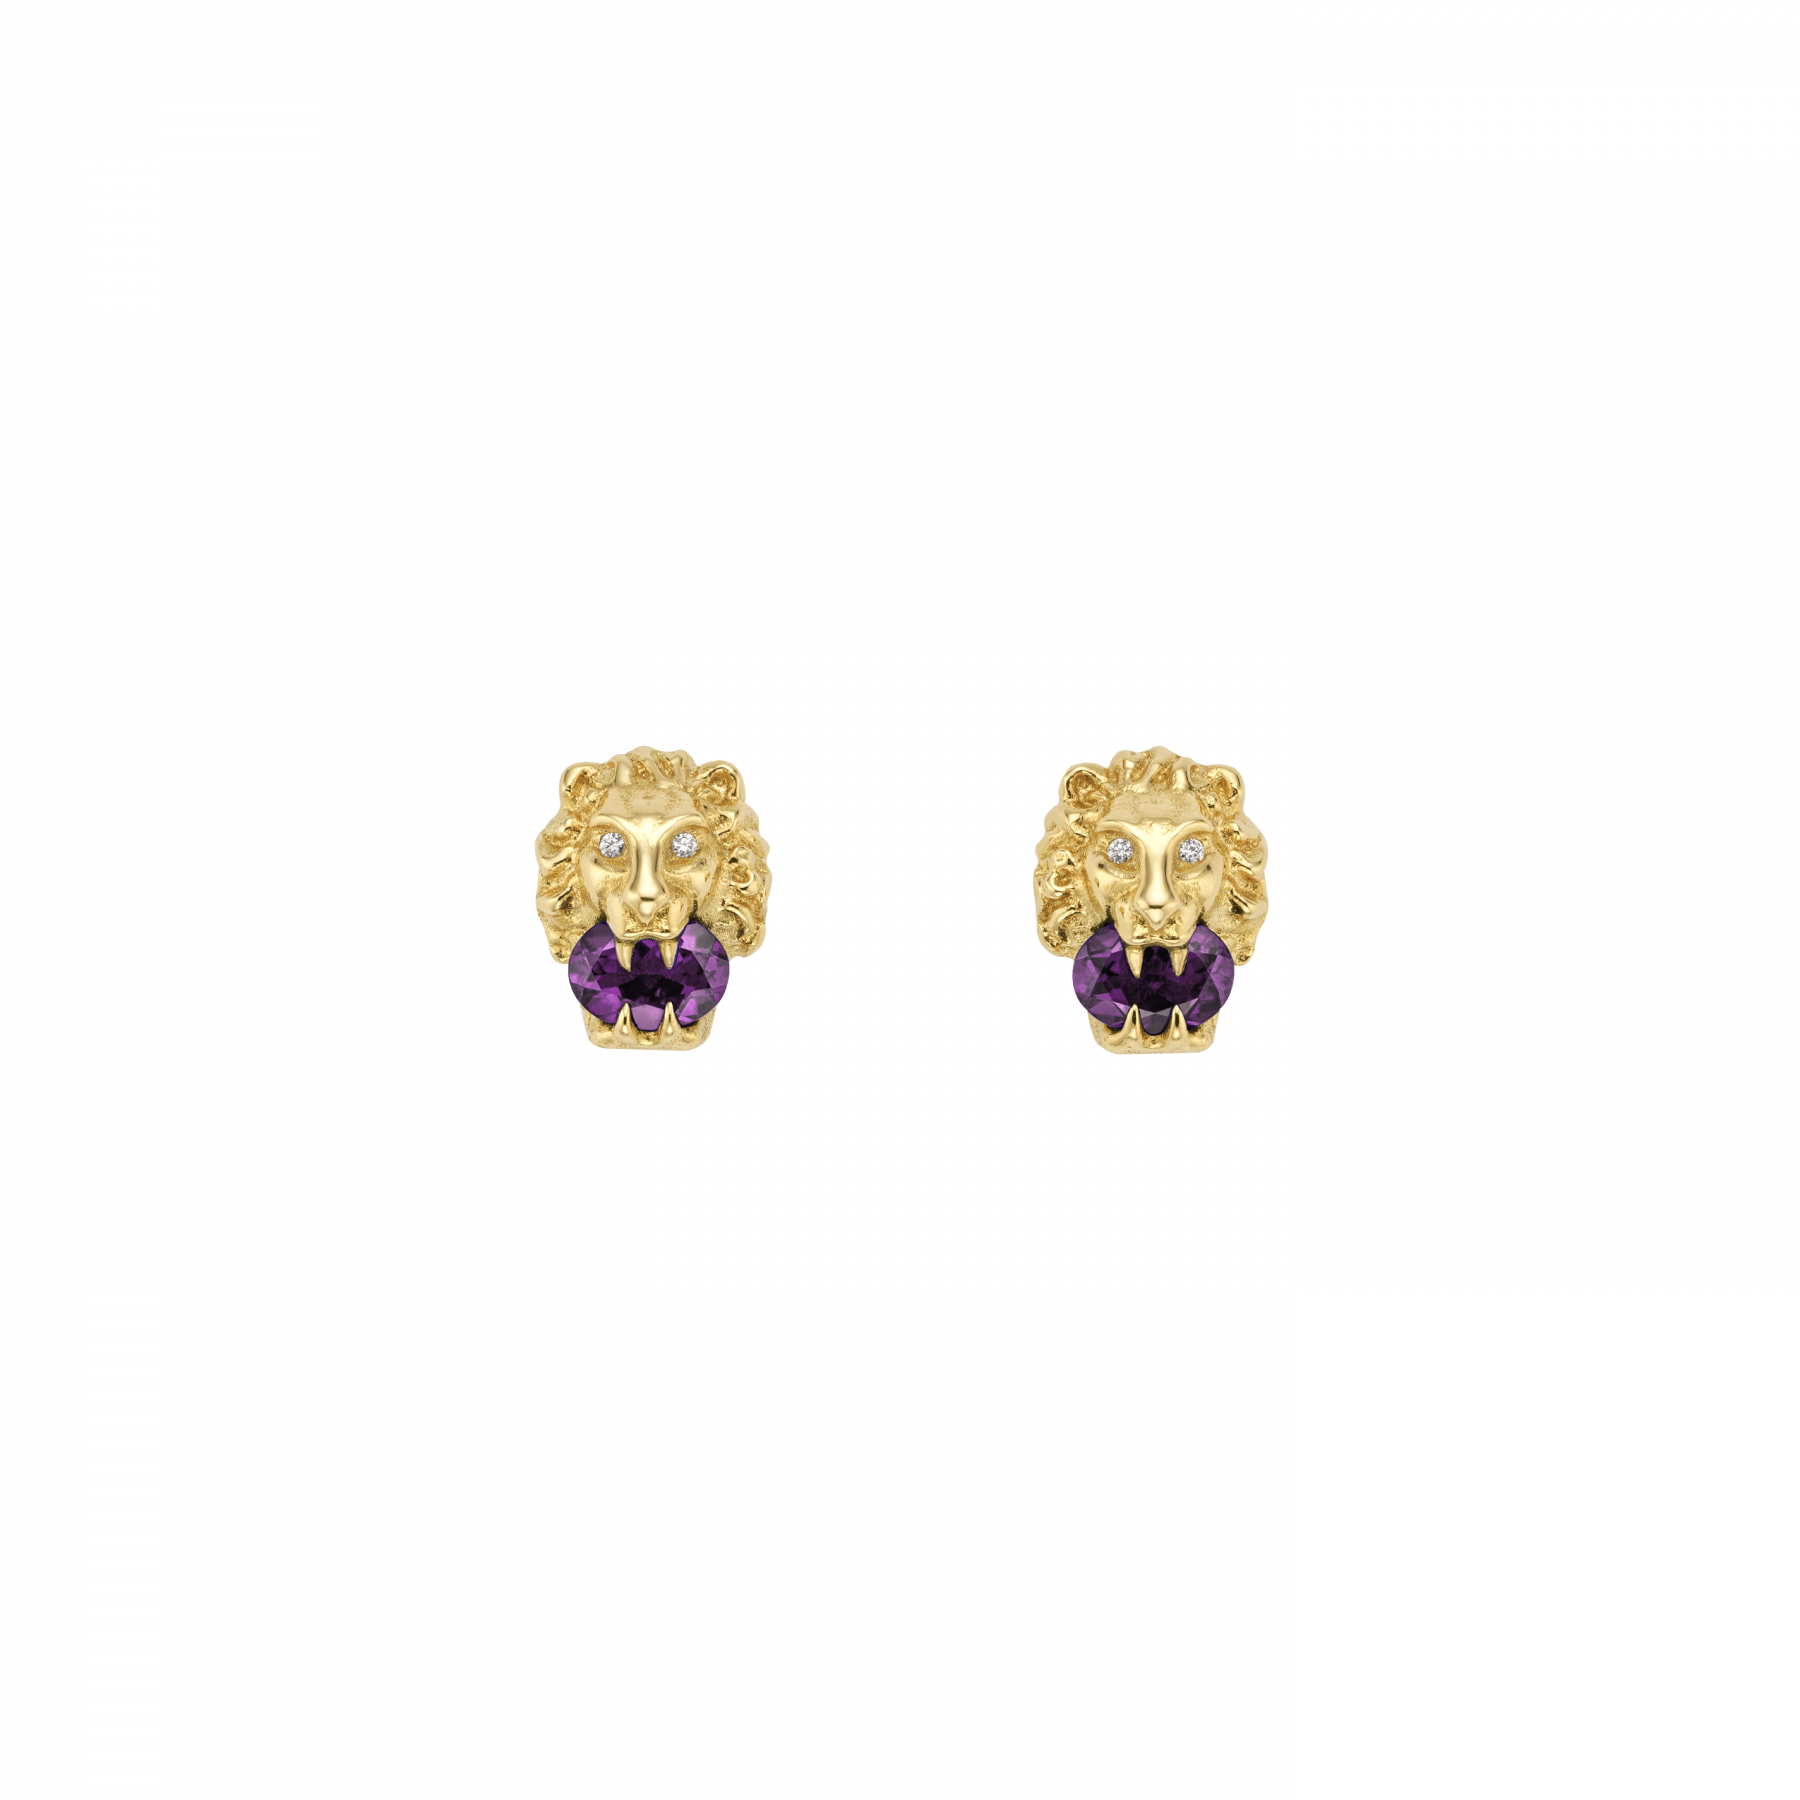 Gucci Lion Head Diamond and Amethyst Stud Earrings in Yellow Gold main view